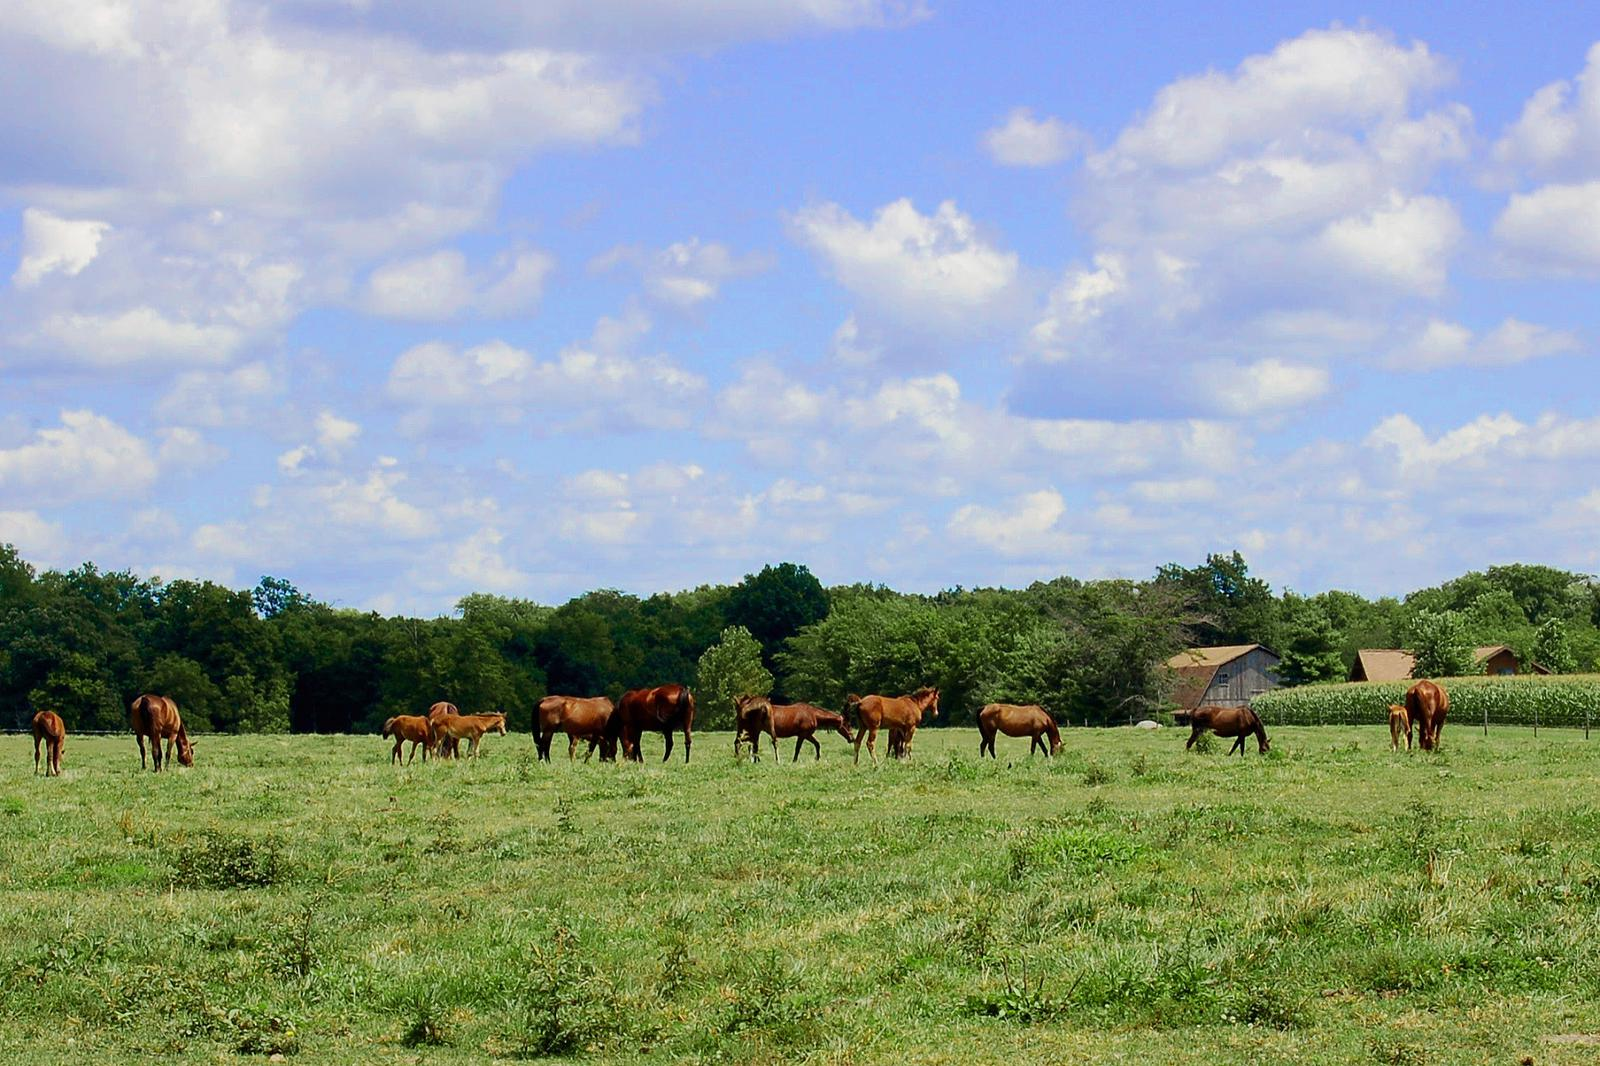 Arthur-Illinois-Horses-in-amish-country